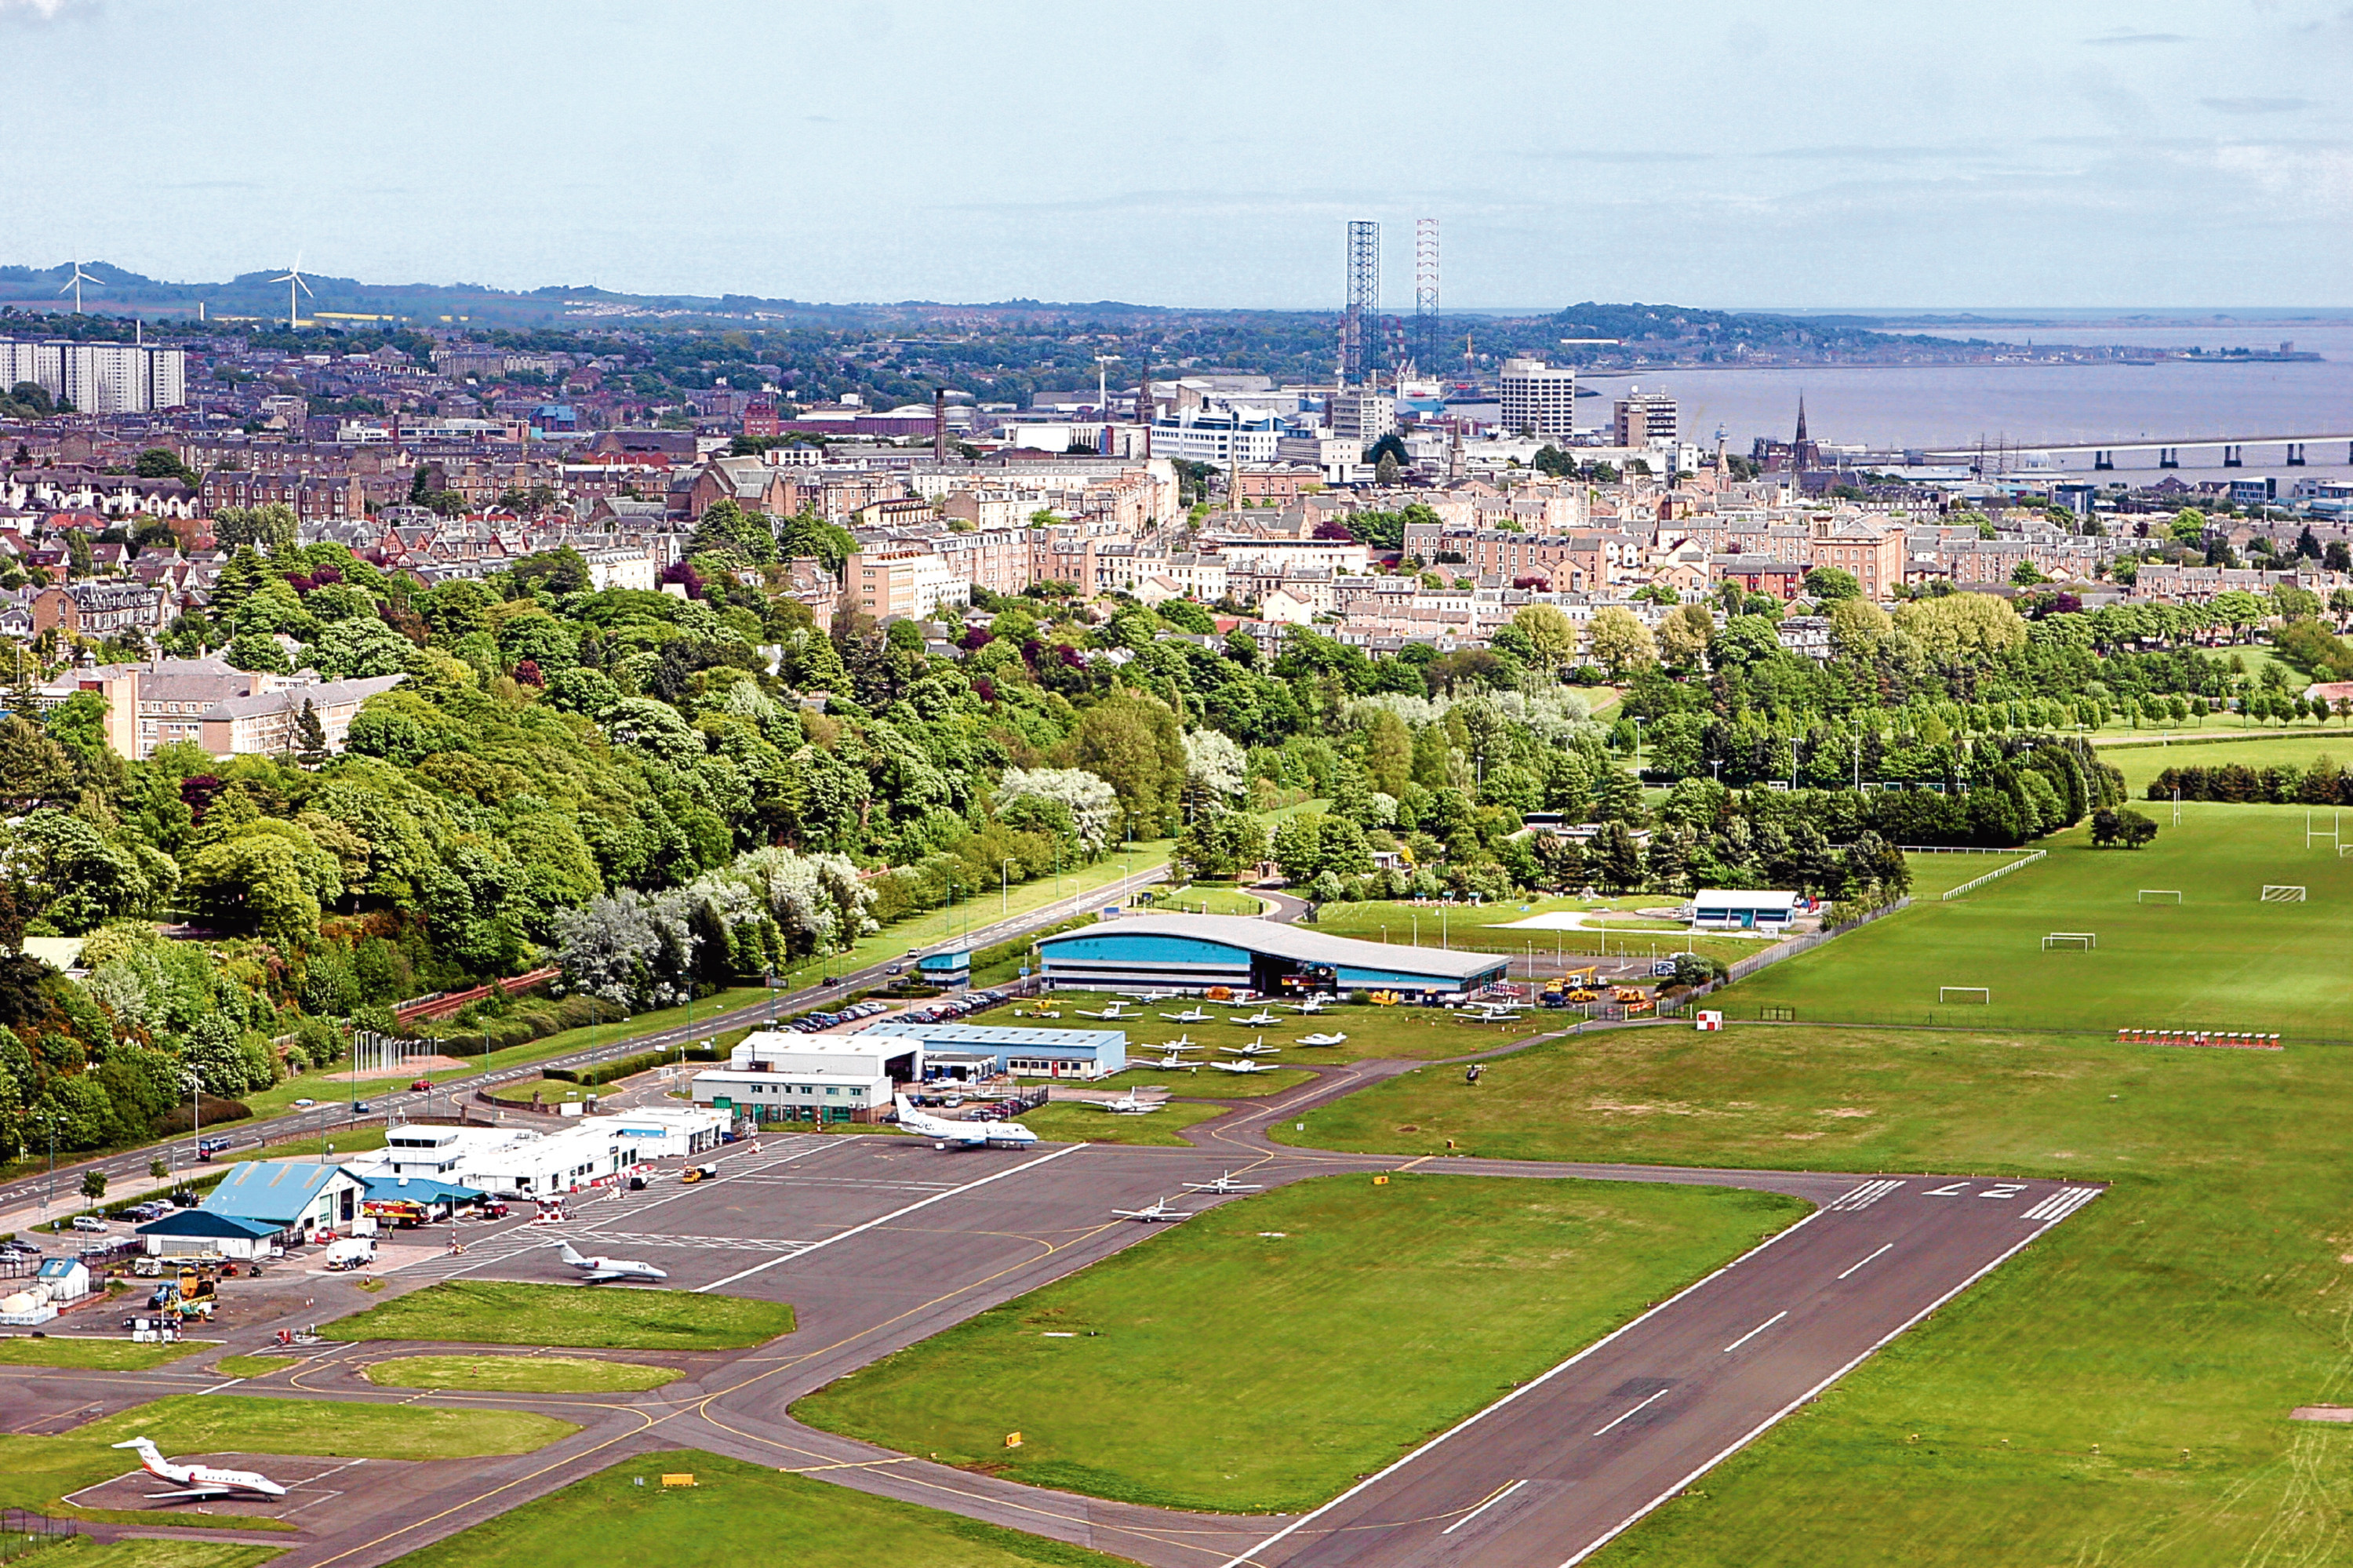 Traffic at Dundee doubled from last year to 24,466.